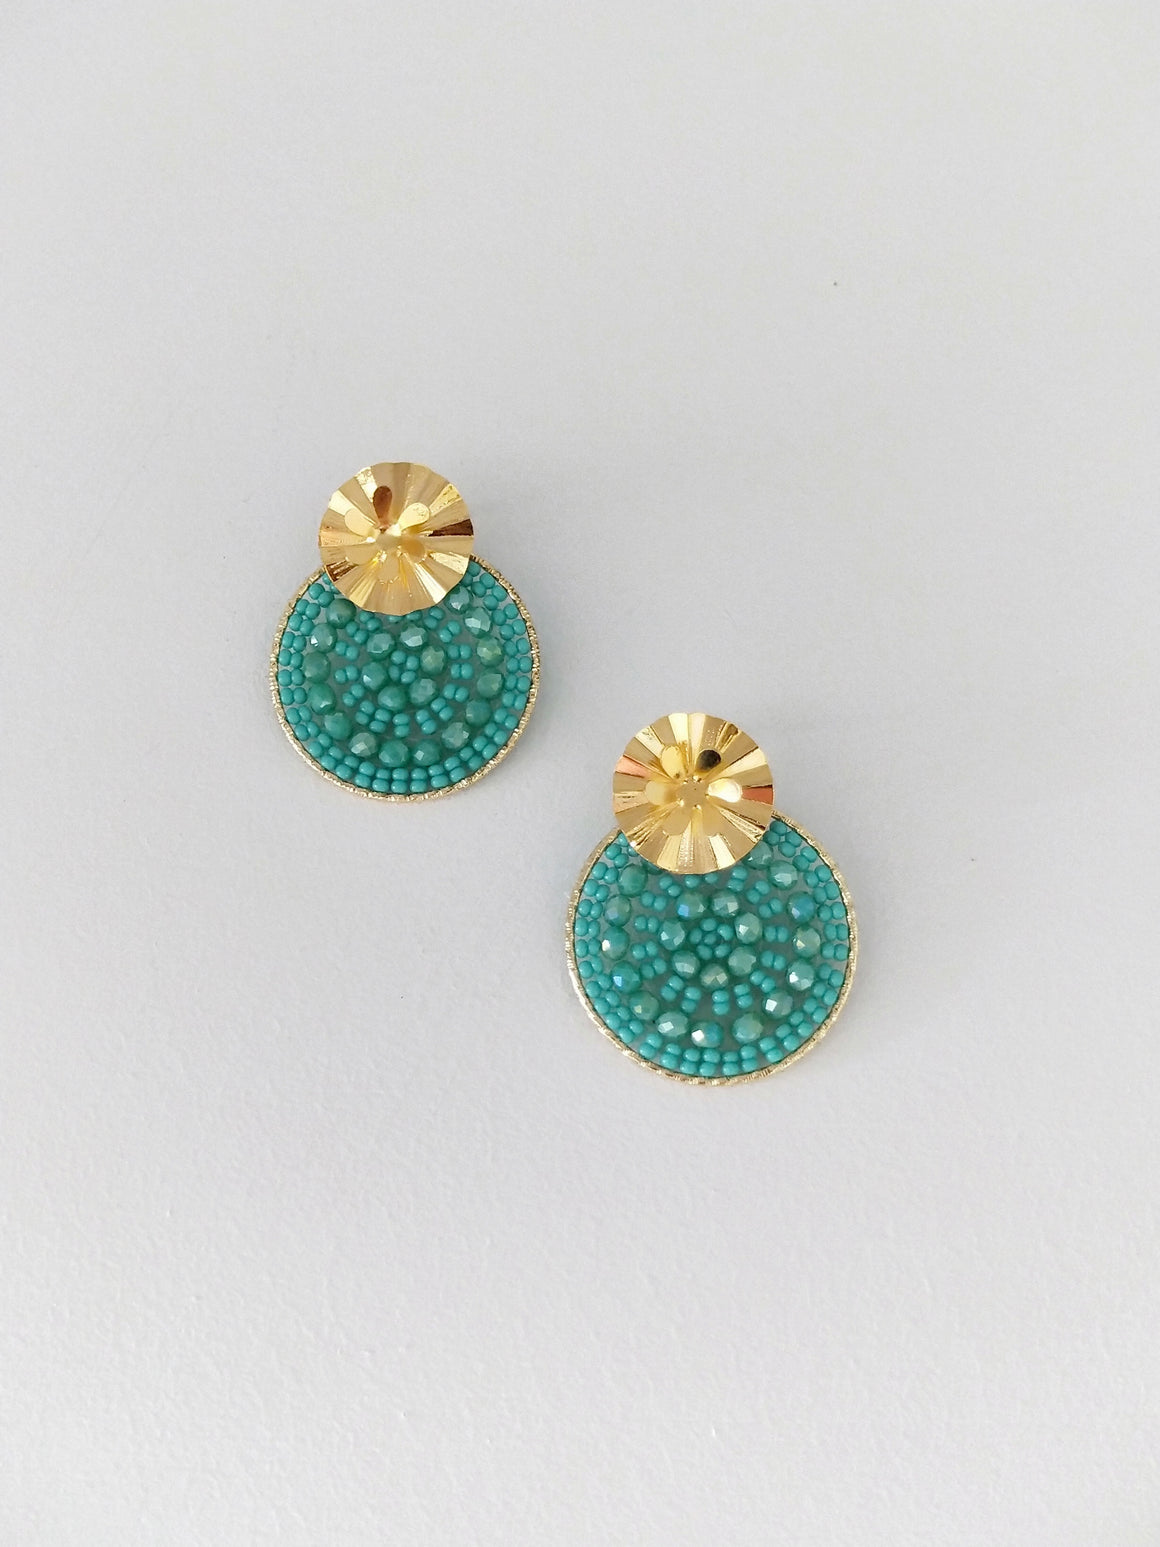 Mandala Petite-Earrings-Colombian Label Co.